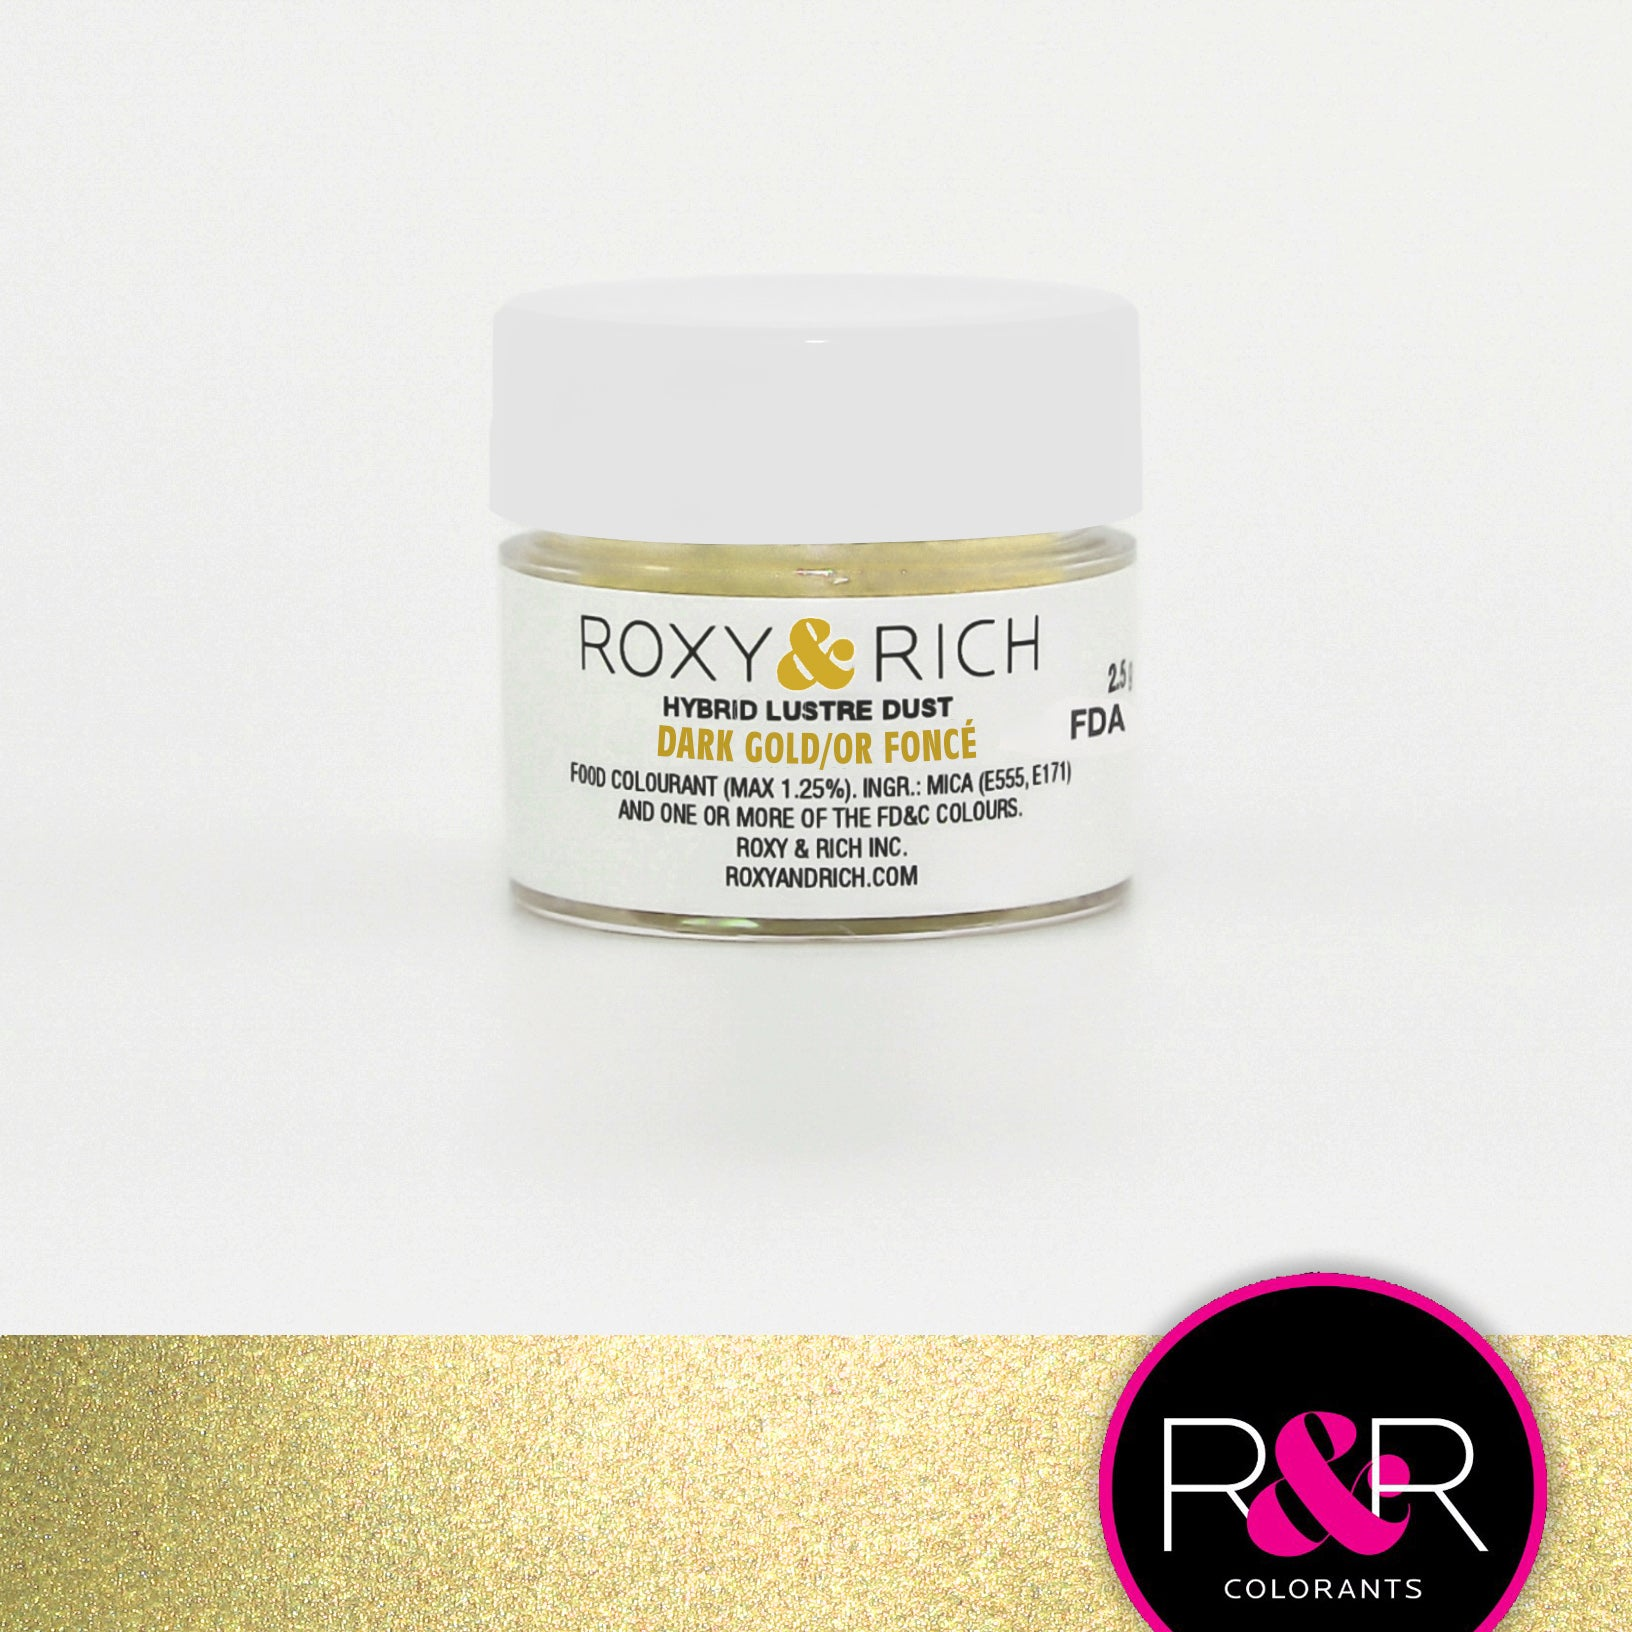 Roxy & Rich Hybrid Luster Dust Dark Gold (# L2-046) - 2.5 G